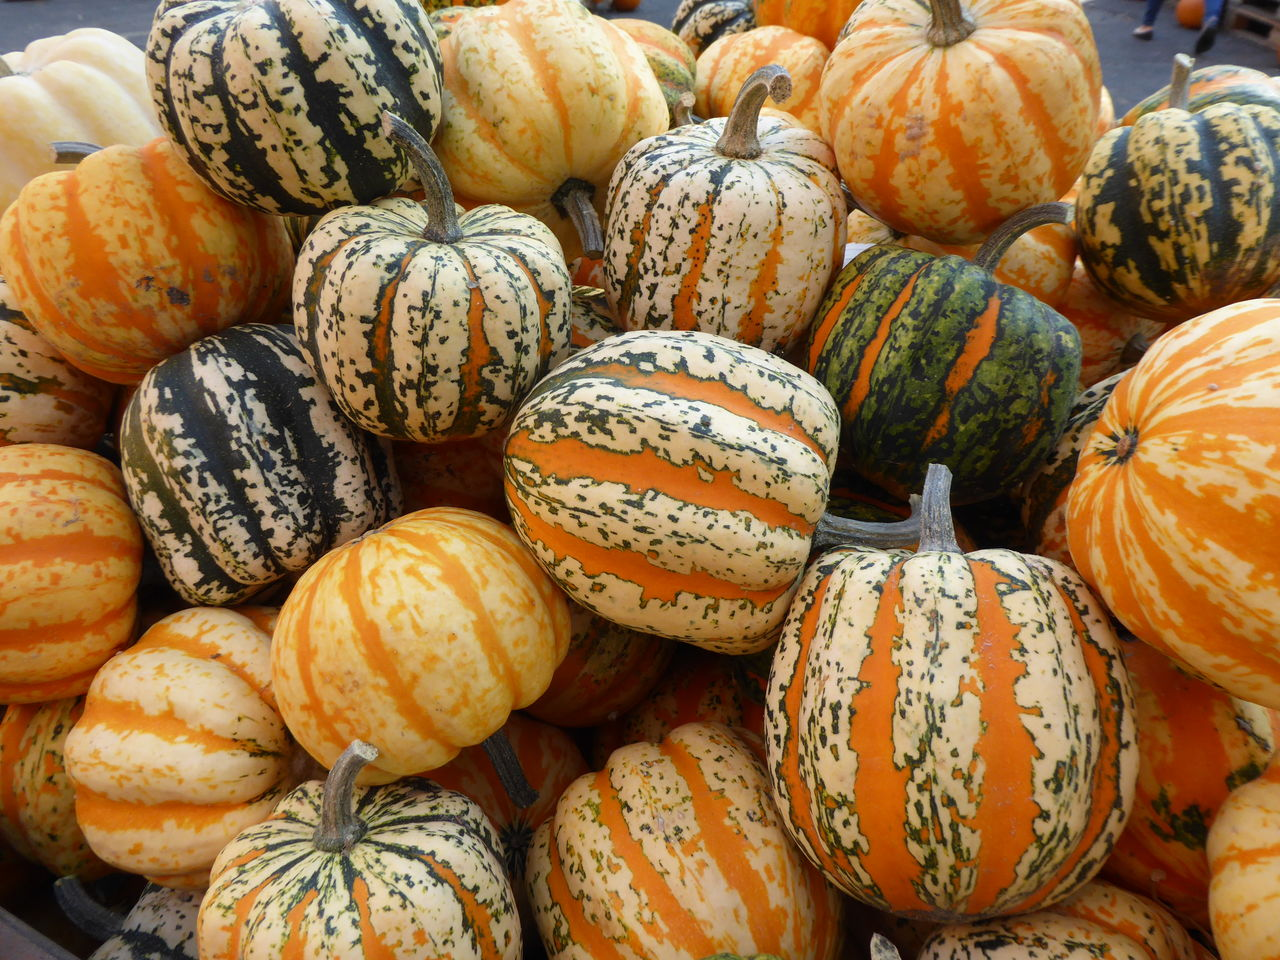 food and drink, food, full frame, pumpkin, freshness, backgrounds, healthy eating, no people, retail, for sale, large group of objects, wellbeing, market, close-up, vegetable, still life, day, abundance, halloween, orange color, gourd, outdoors, retail display